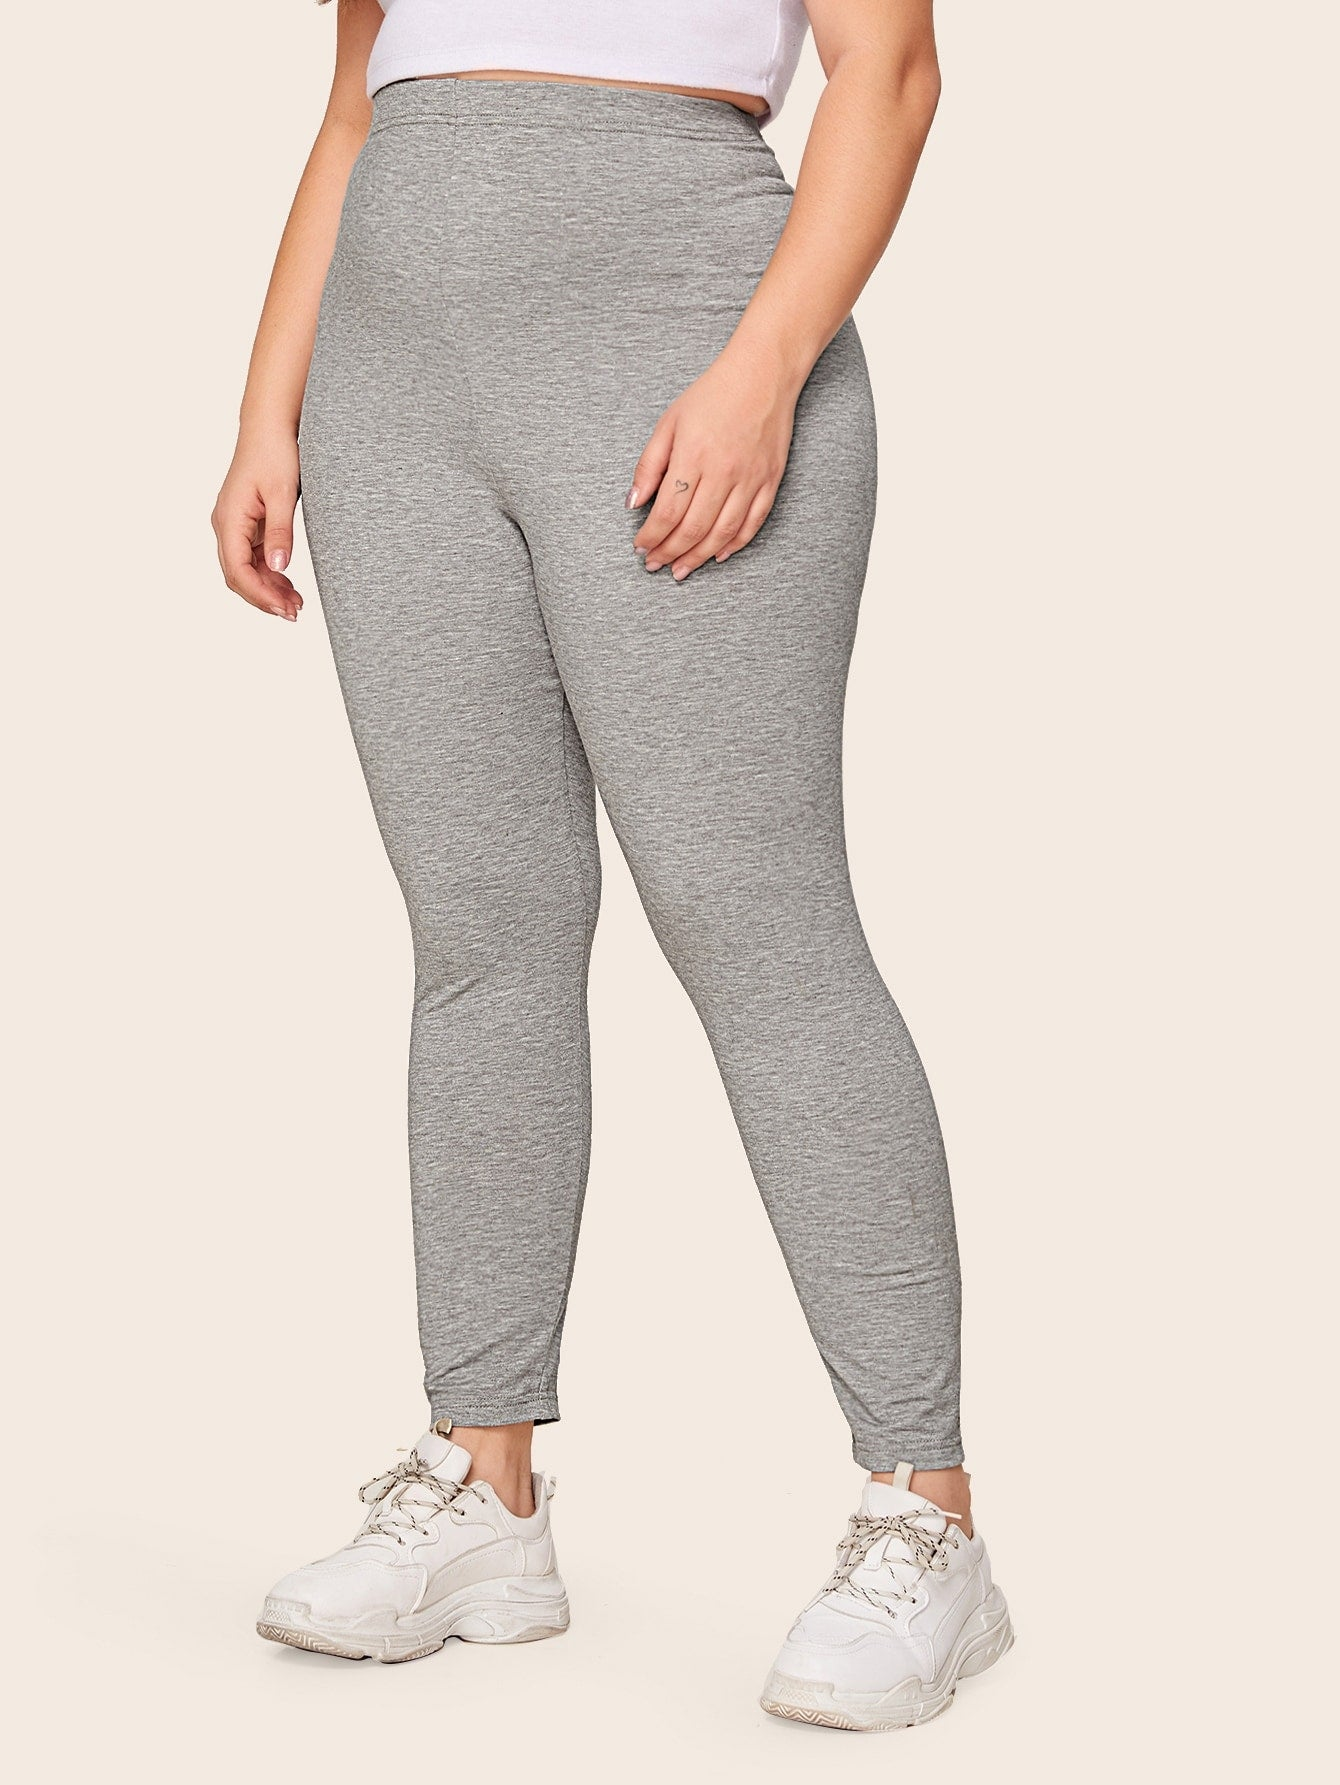 Heather Grey Legging